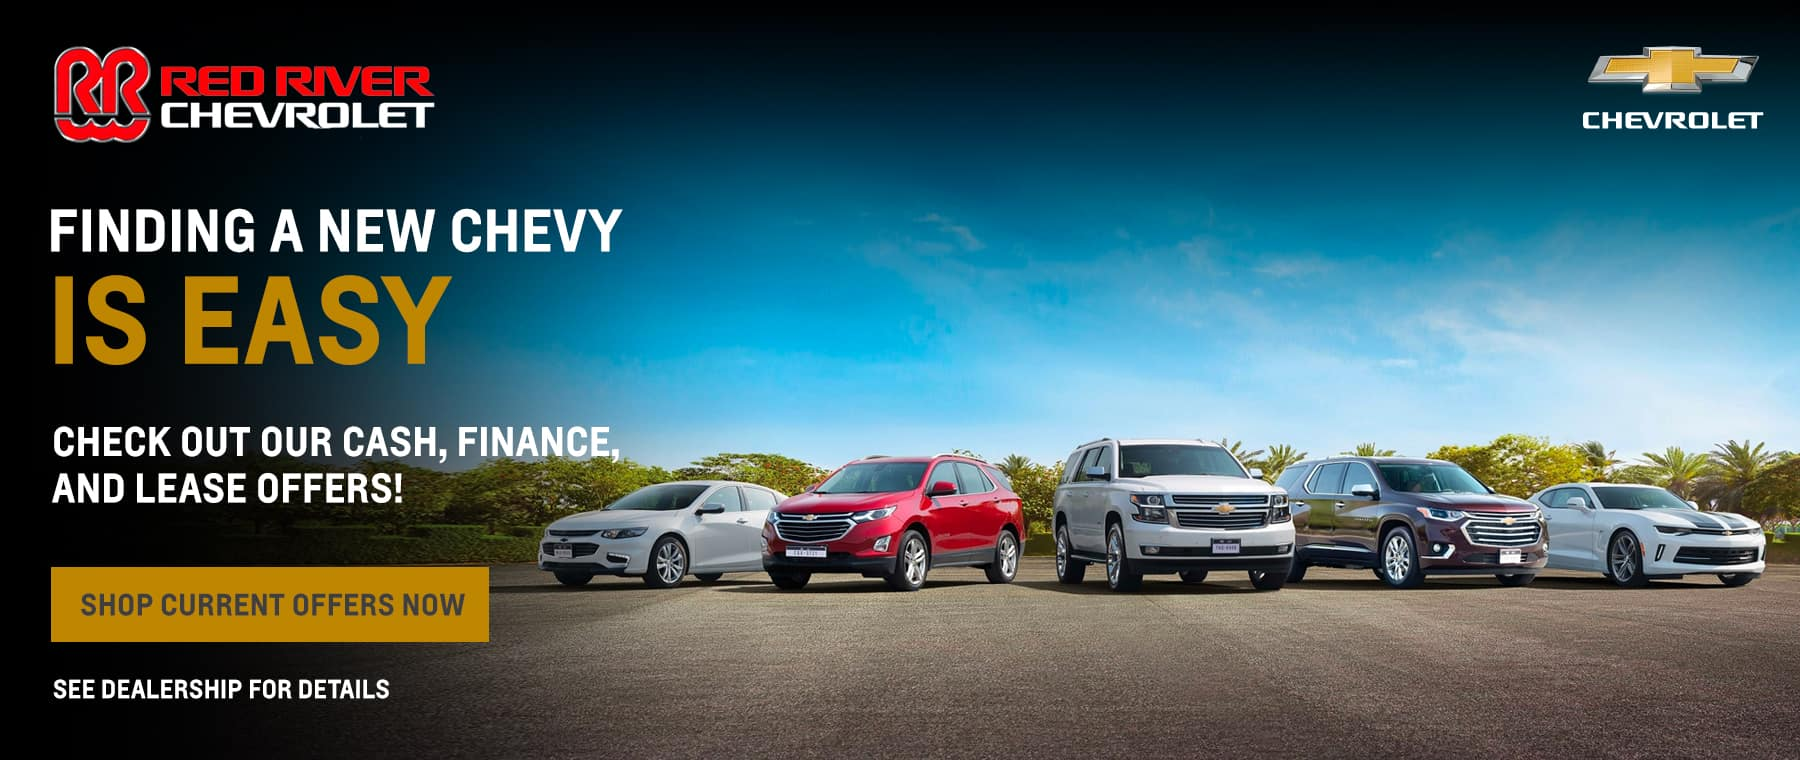 Red River Chevrolet Chevrolet Dealer In Bossier City La